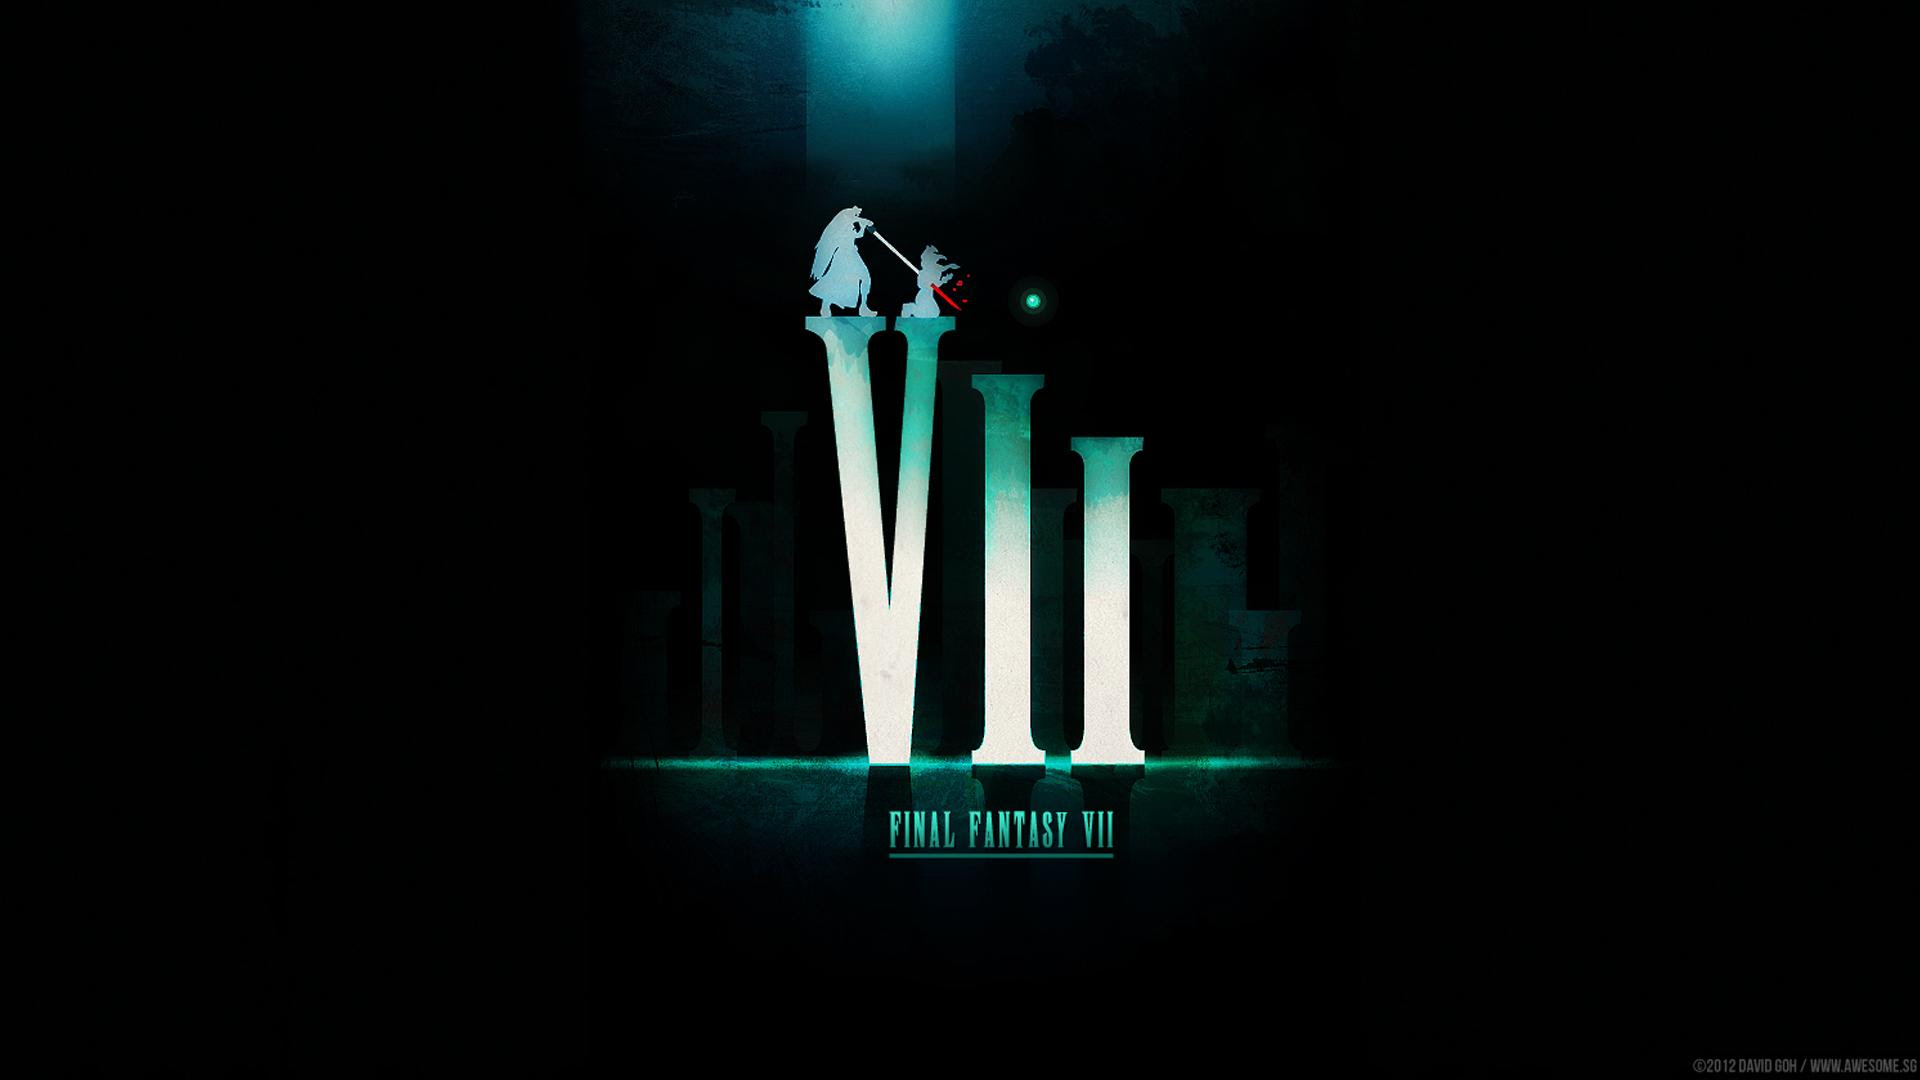 Final Fantasy Vii 1920x1080 Wallpapers